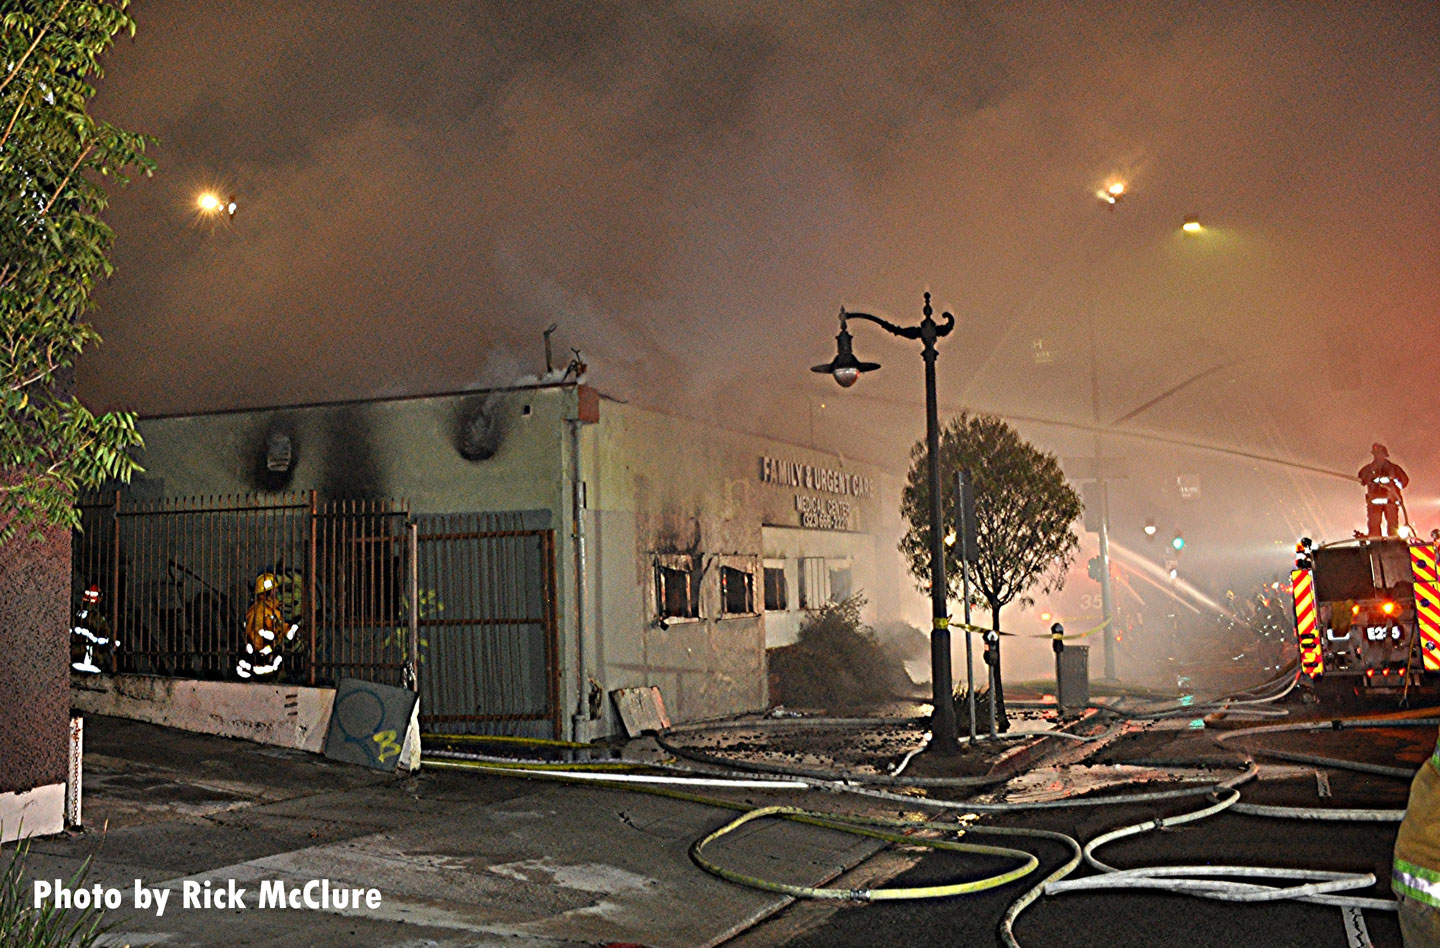 Smoke blankets the scene as City of Los Angeles crews responded to a fire in a vacant building.